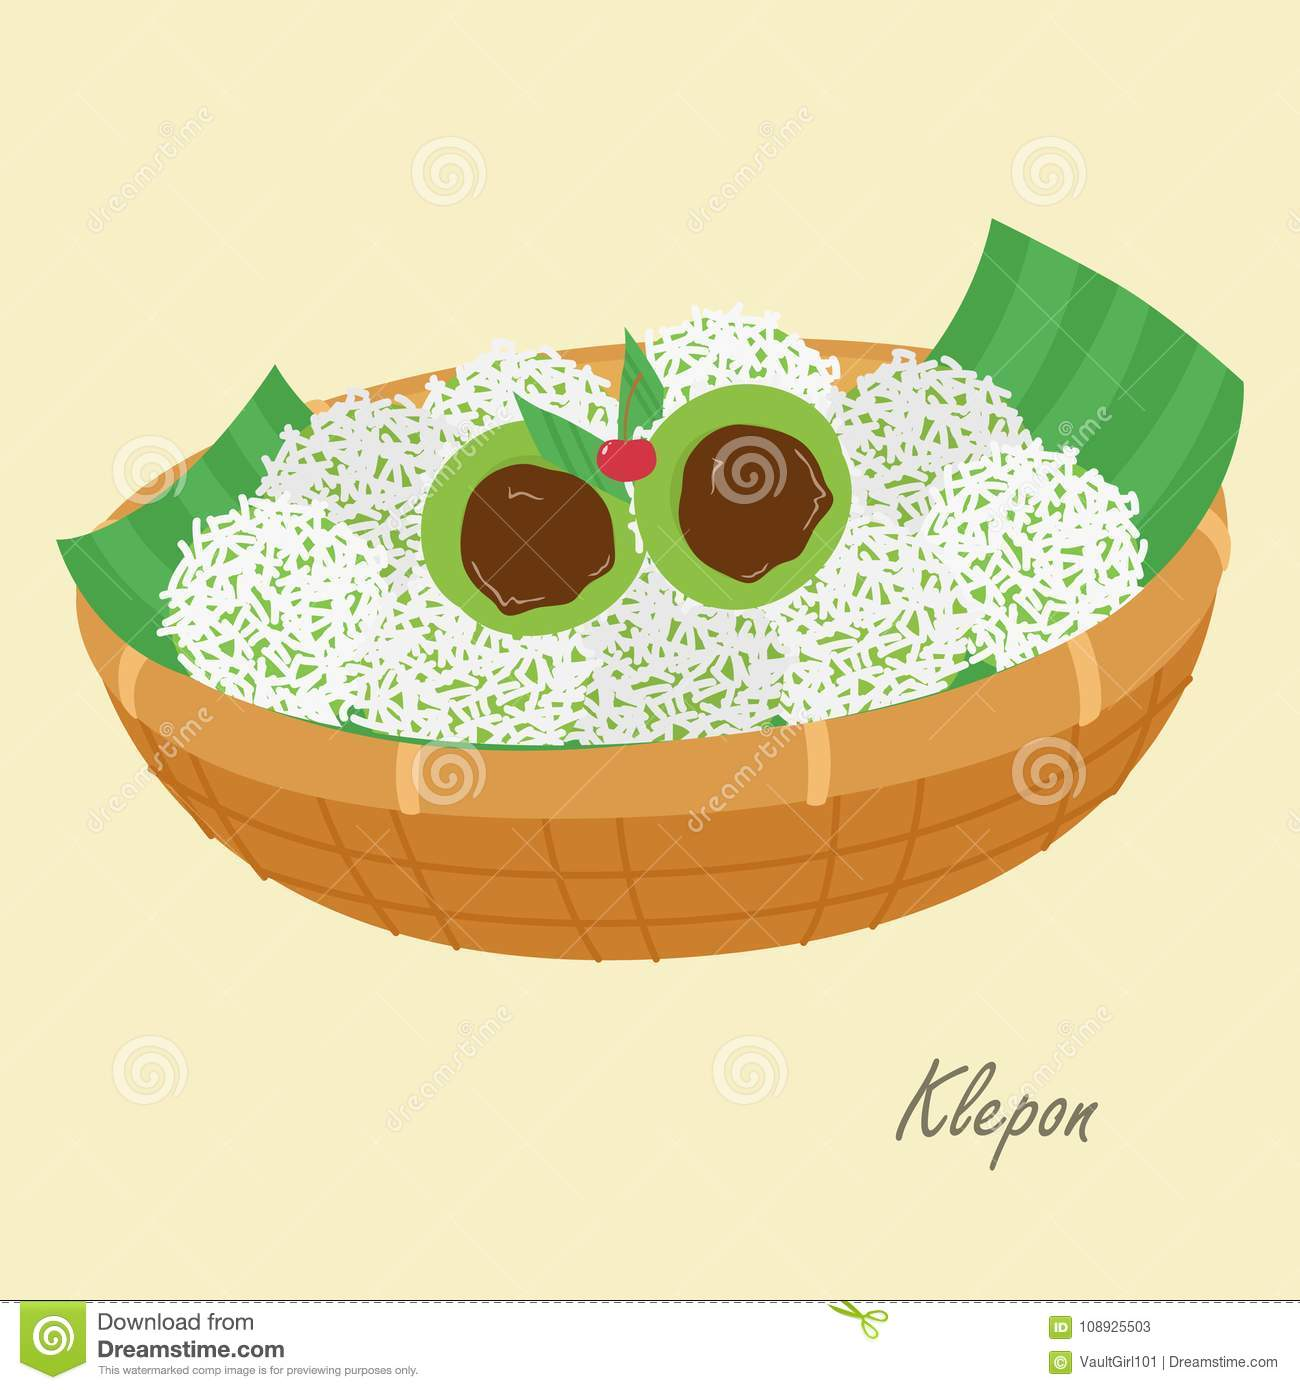 Indonesian Traditional Cake Klepon Cartoon Vector Royalty Free